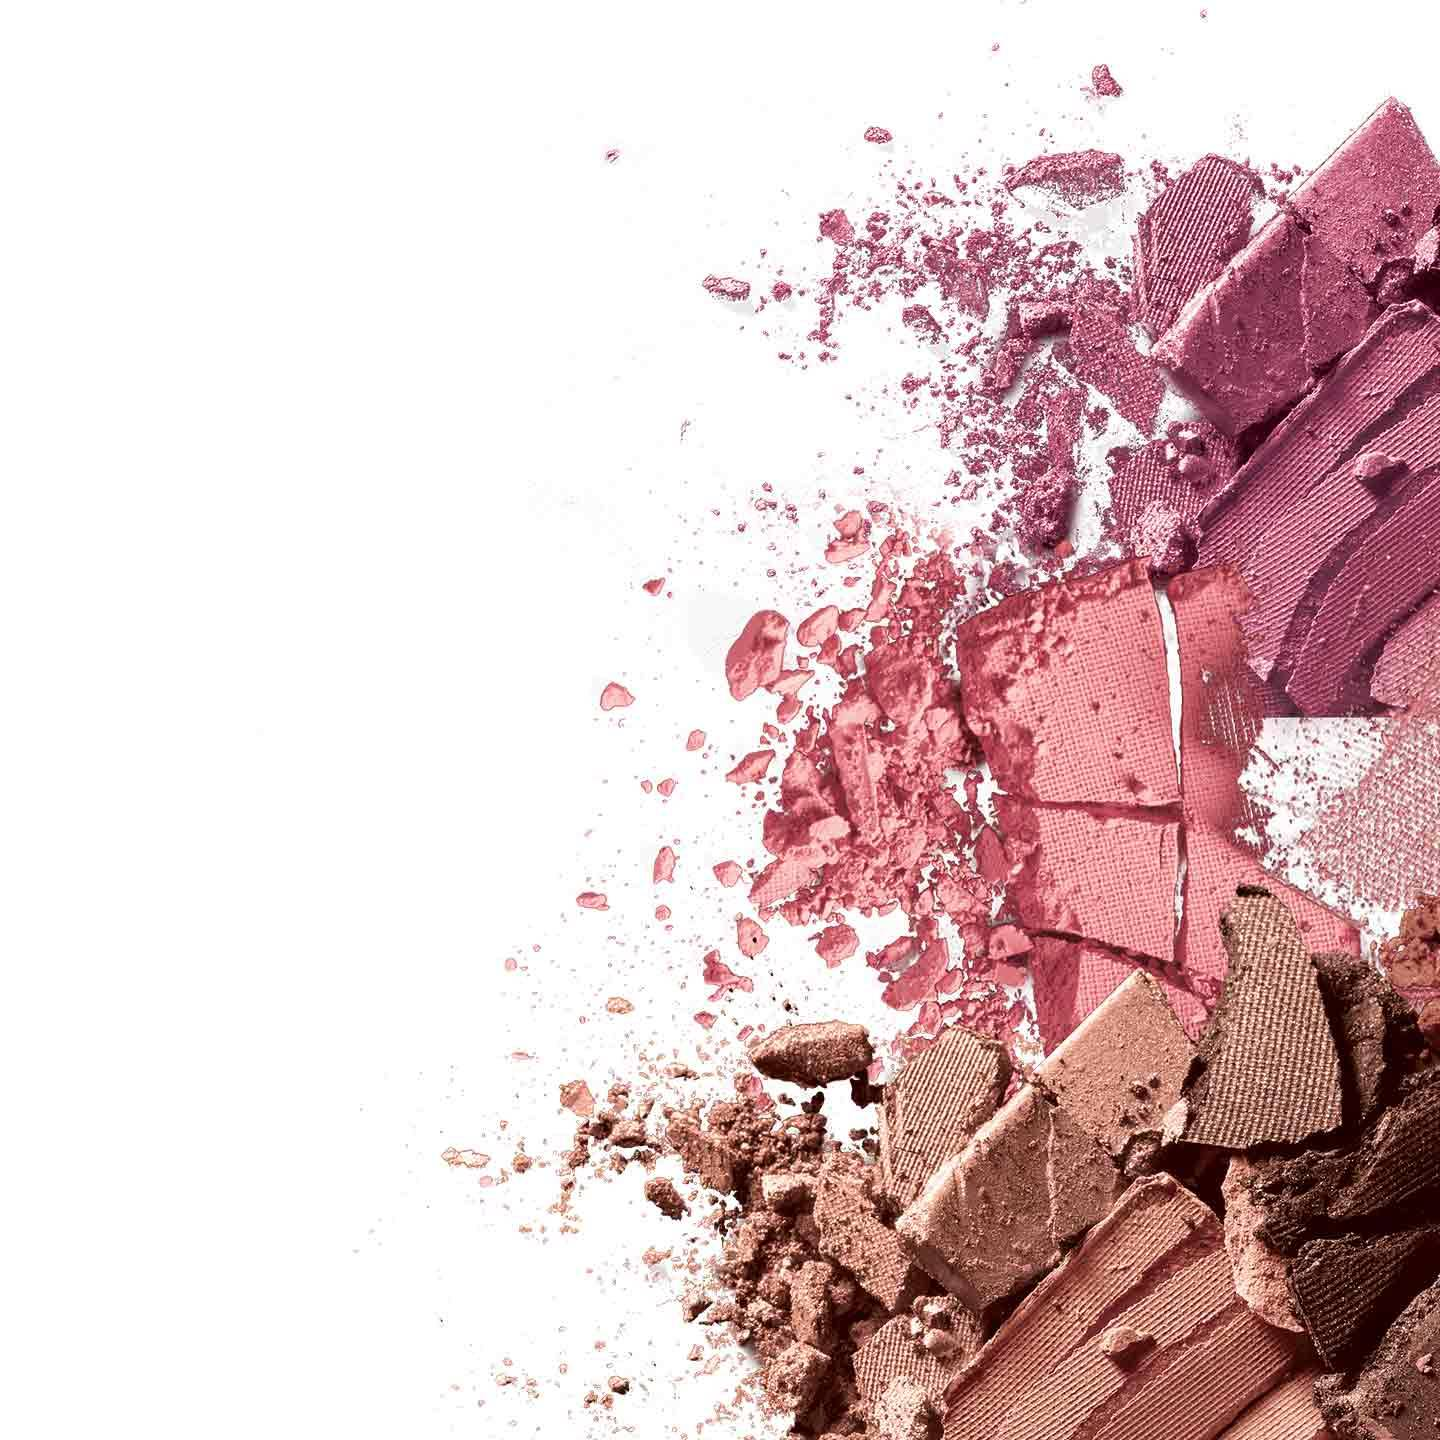 maybelline-blush-face-studio-blush-texture-1x1